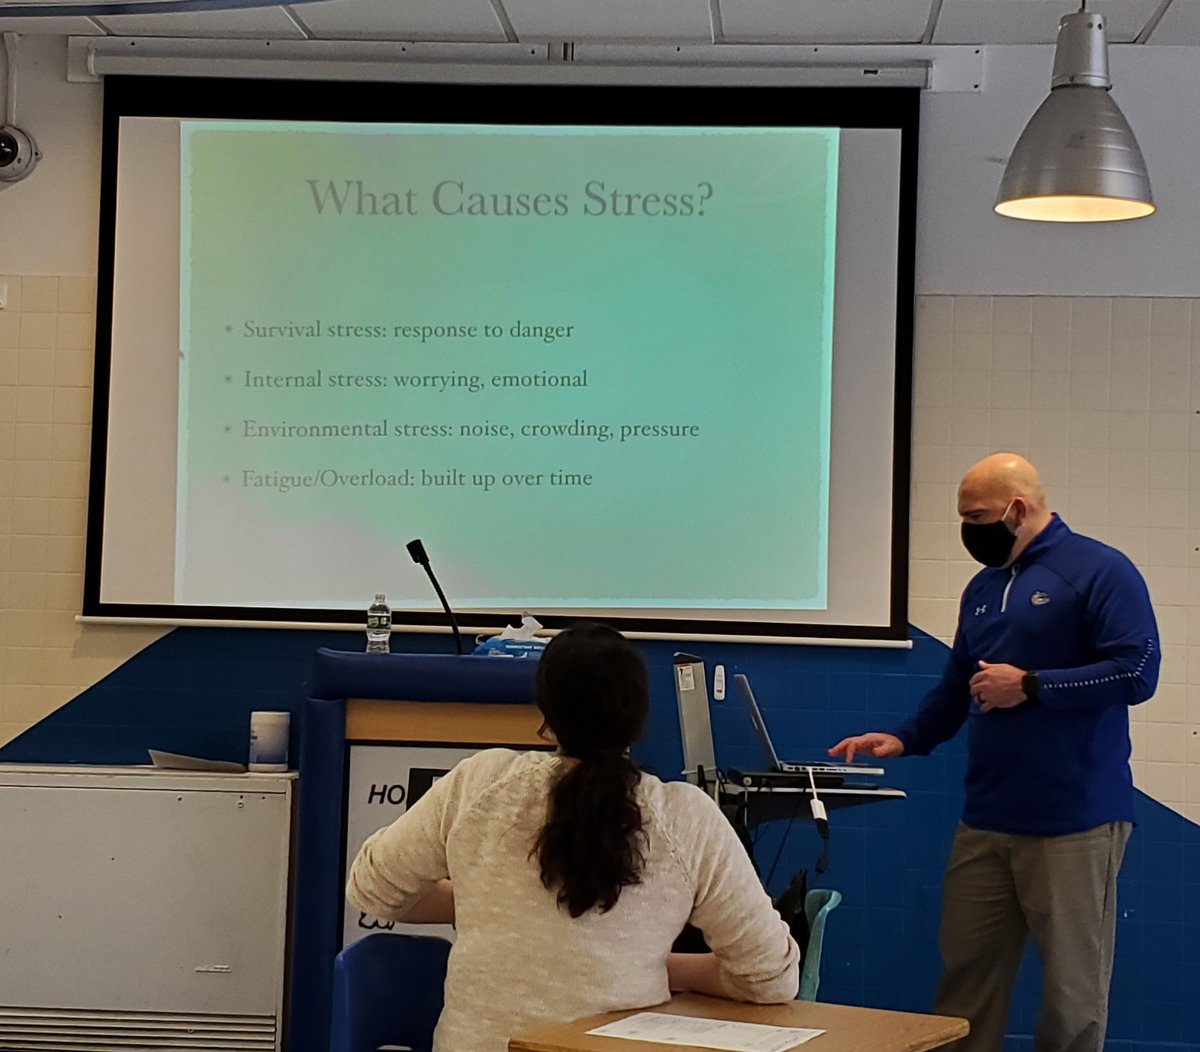 Thanks Mr. Luciani for sharing with our Wellness Club today on exercise for stress management! #stressmanagement #wellness